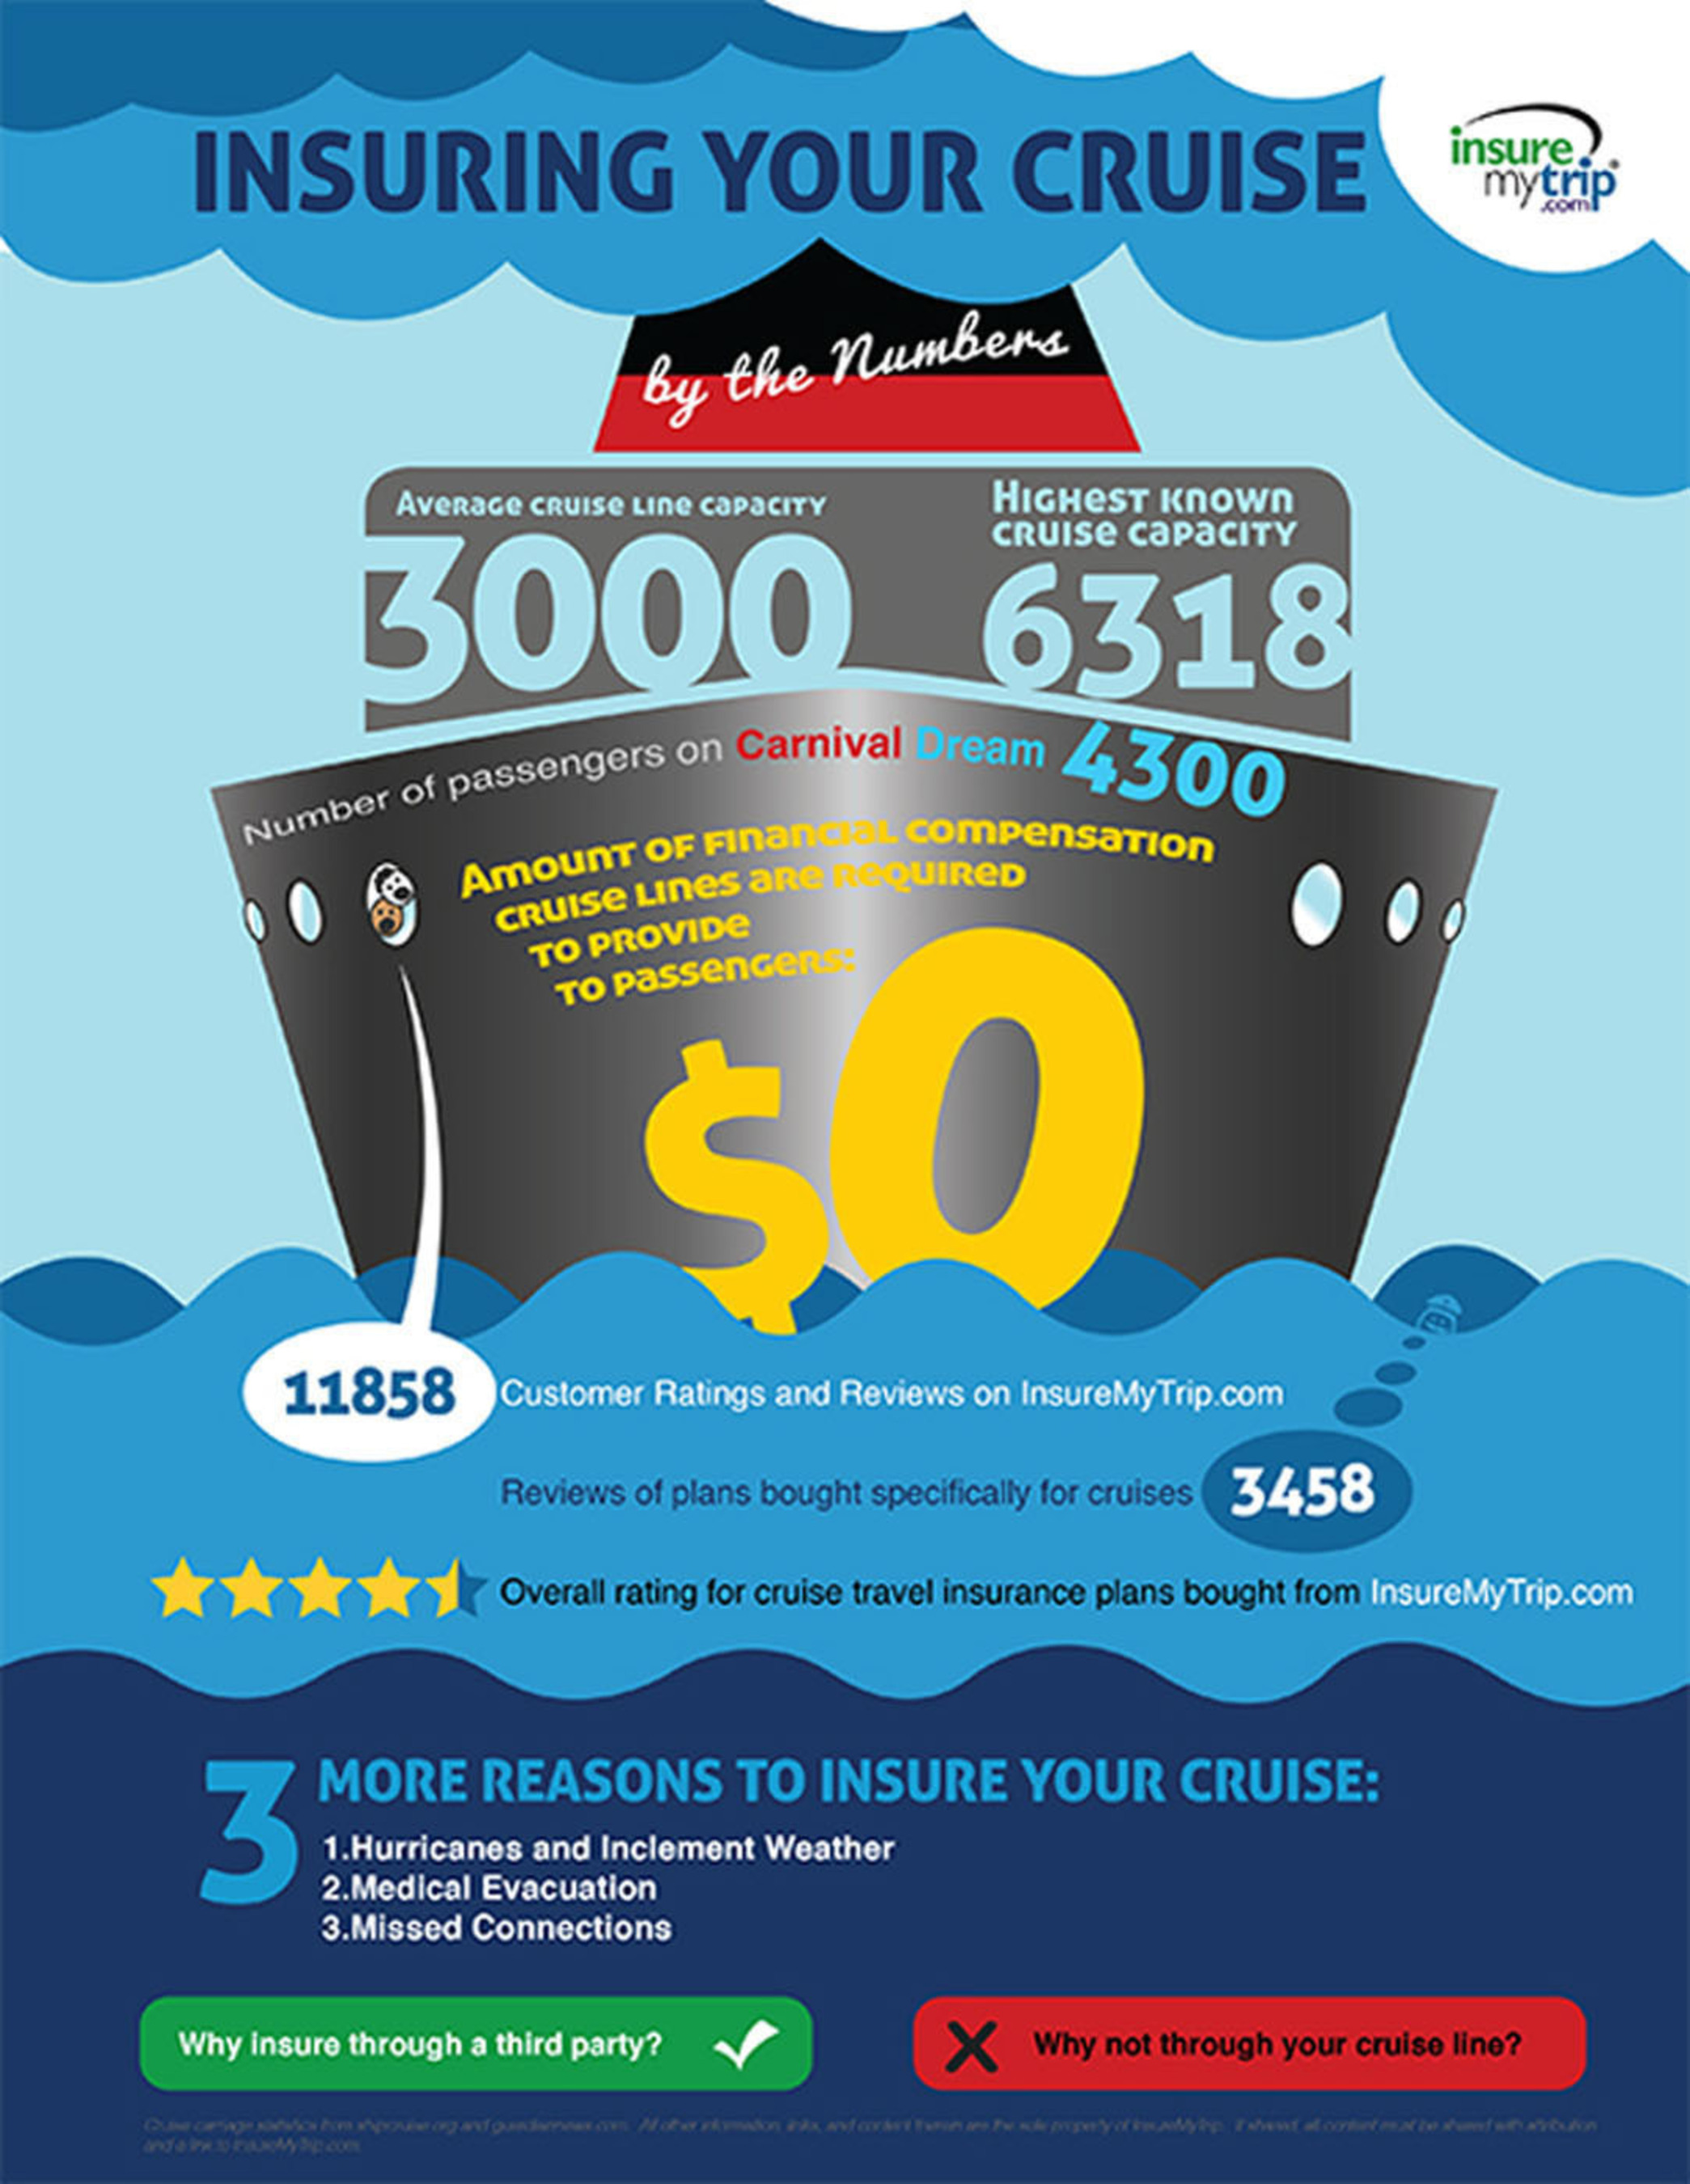 Insuring your cruise by the numbers: To help travelers understand exactly why insurance is important for a cruise vacation, as well as how to find the best travel insurance coverage for their particular needs, InsureMyTrip has put together an interactive infographic with embedded links to further coverage of topics that may be of particular interest to those planning cruises.  (PRNewsFoto/InsureMyTrip.com)